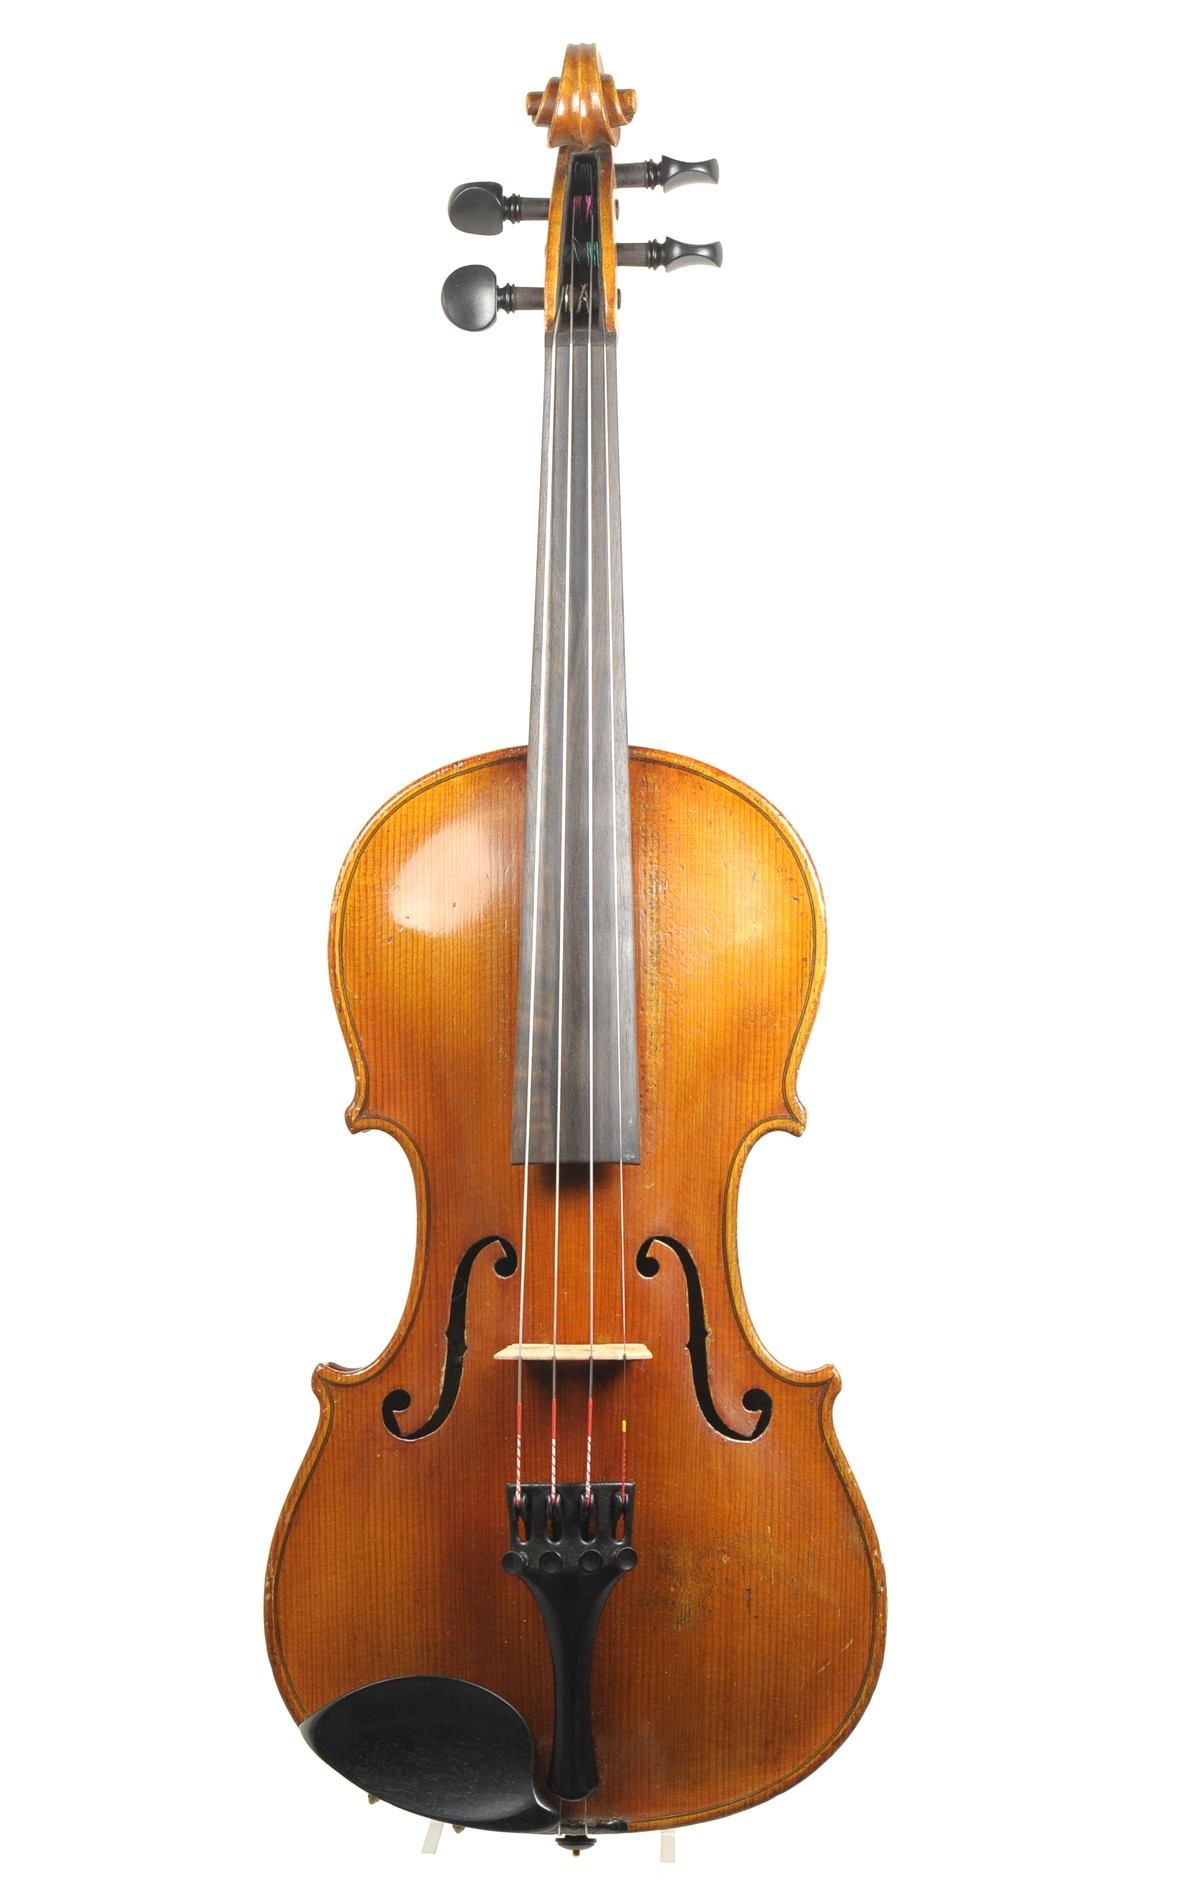 Bohemian violin, Stainer model by Alfons Vavra, 1921 - top